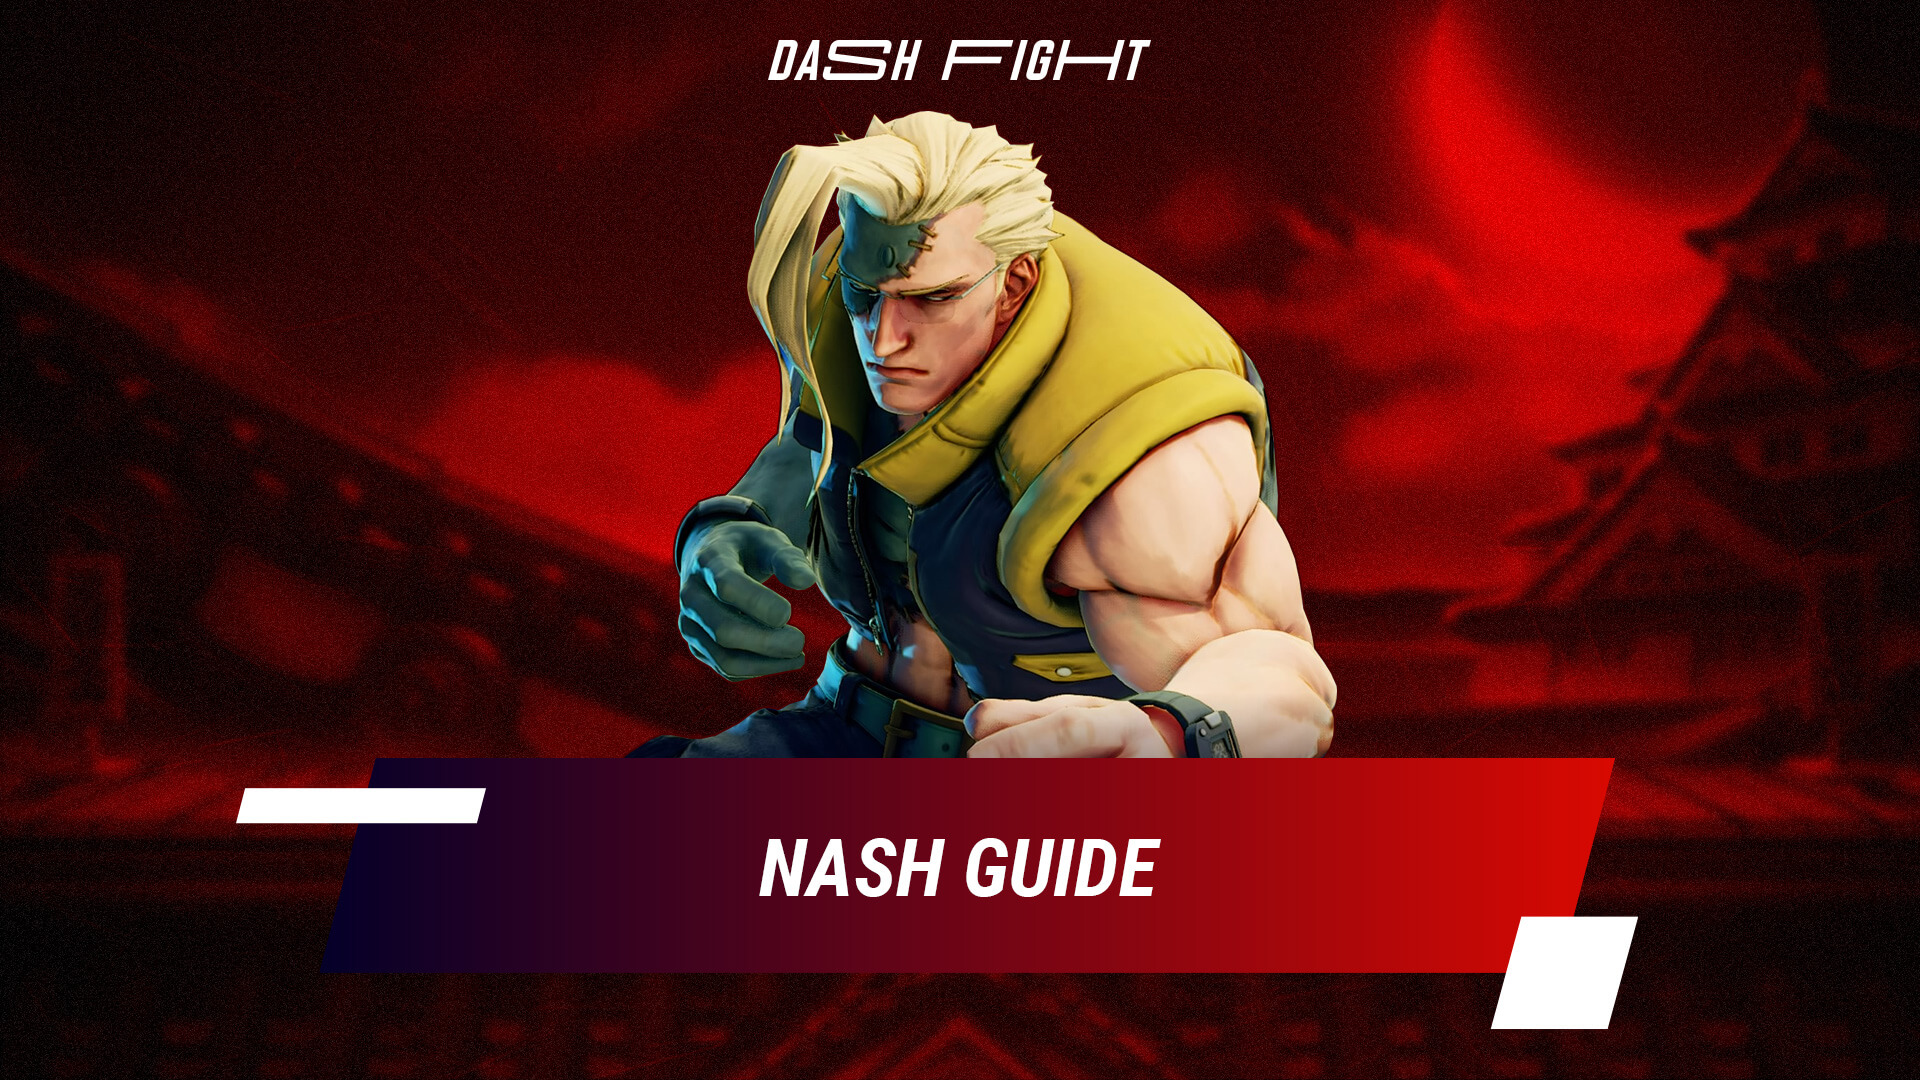 Street Fighter 5: Nash Guide - Combos and Move List